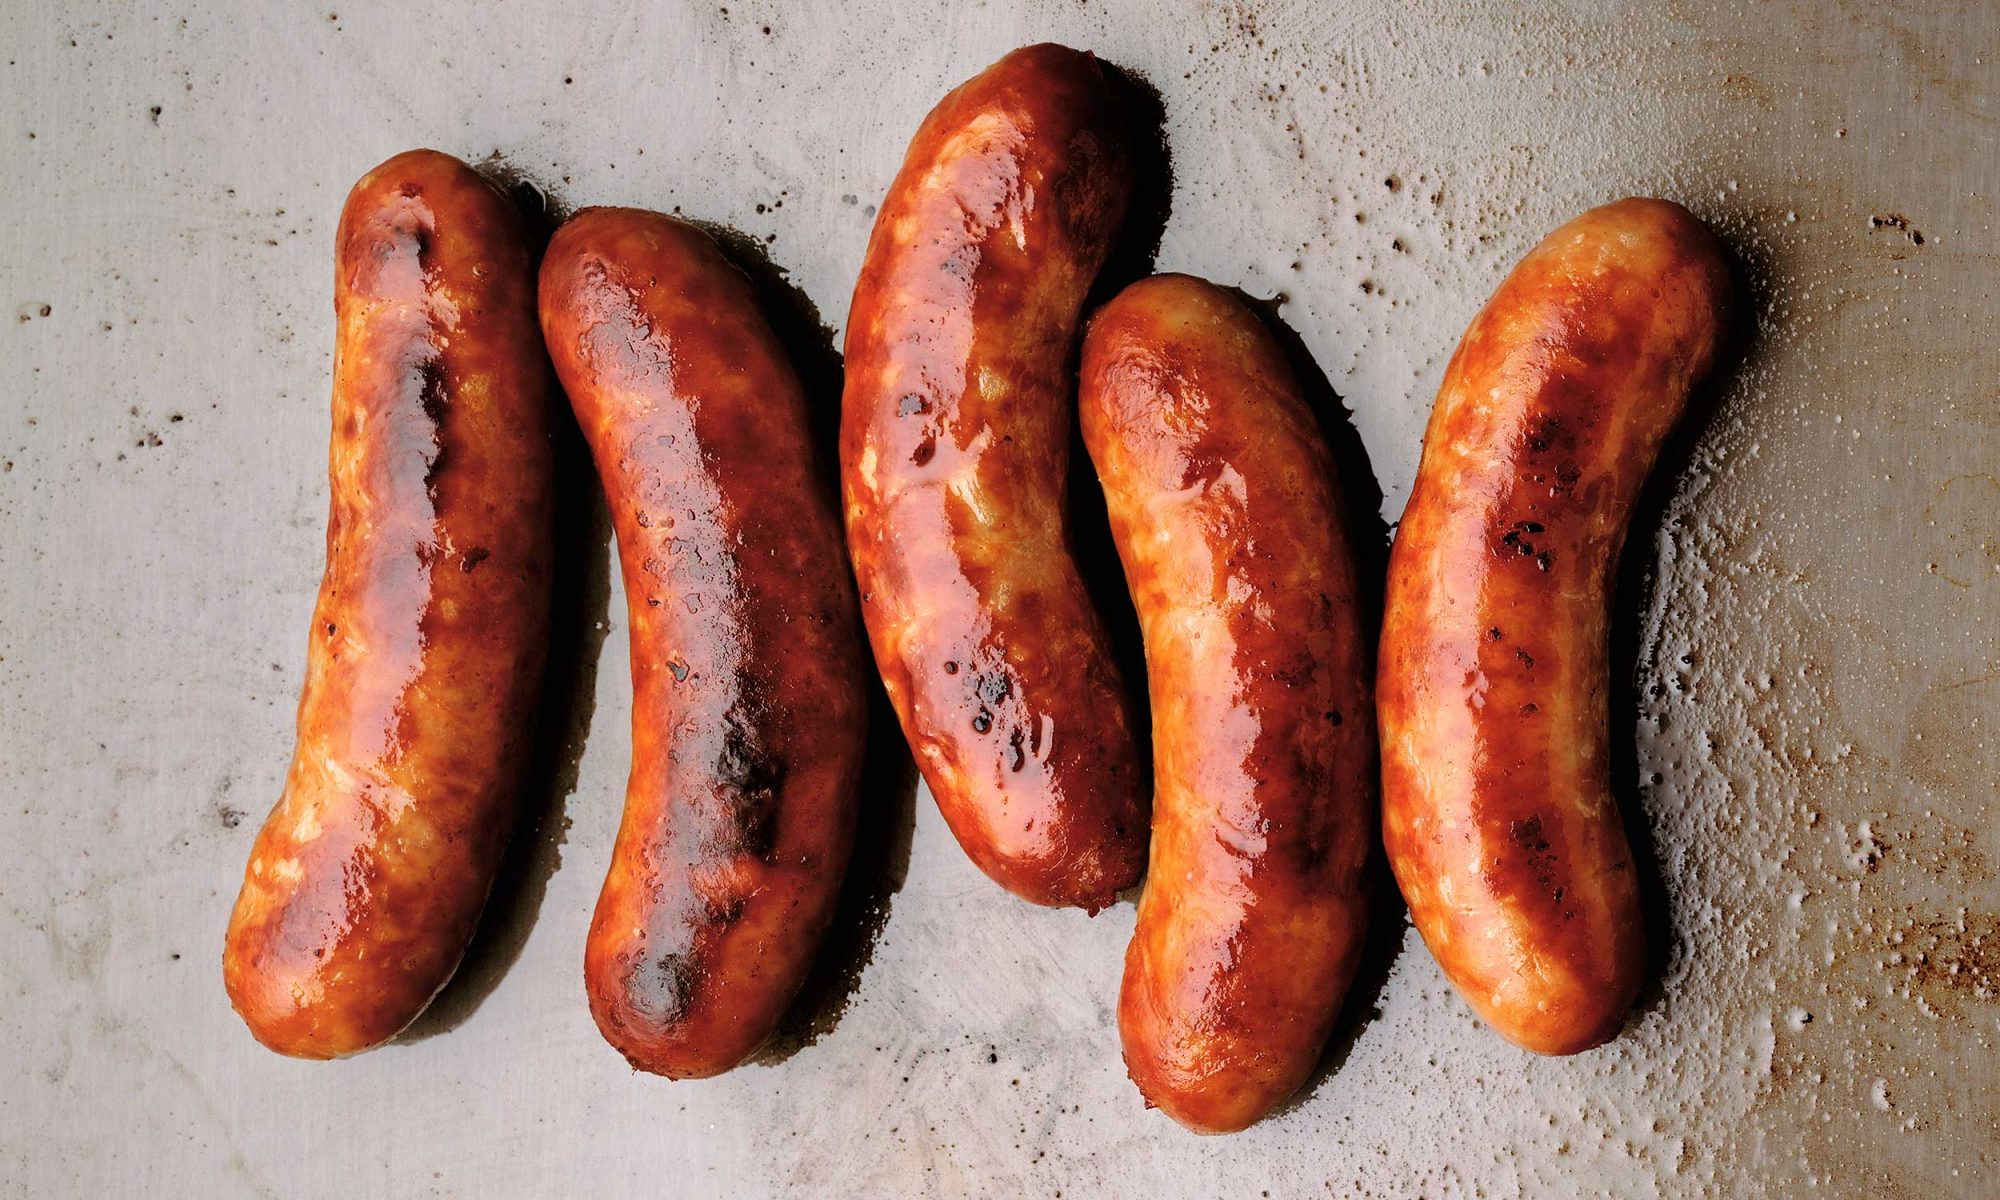 EC: What's the Shelf Life of Sausage?